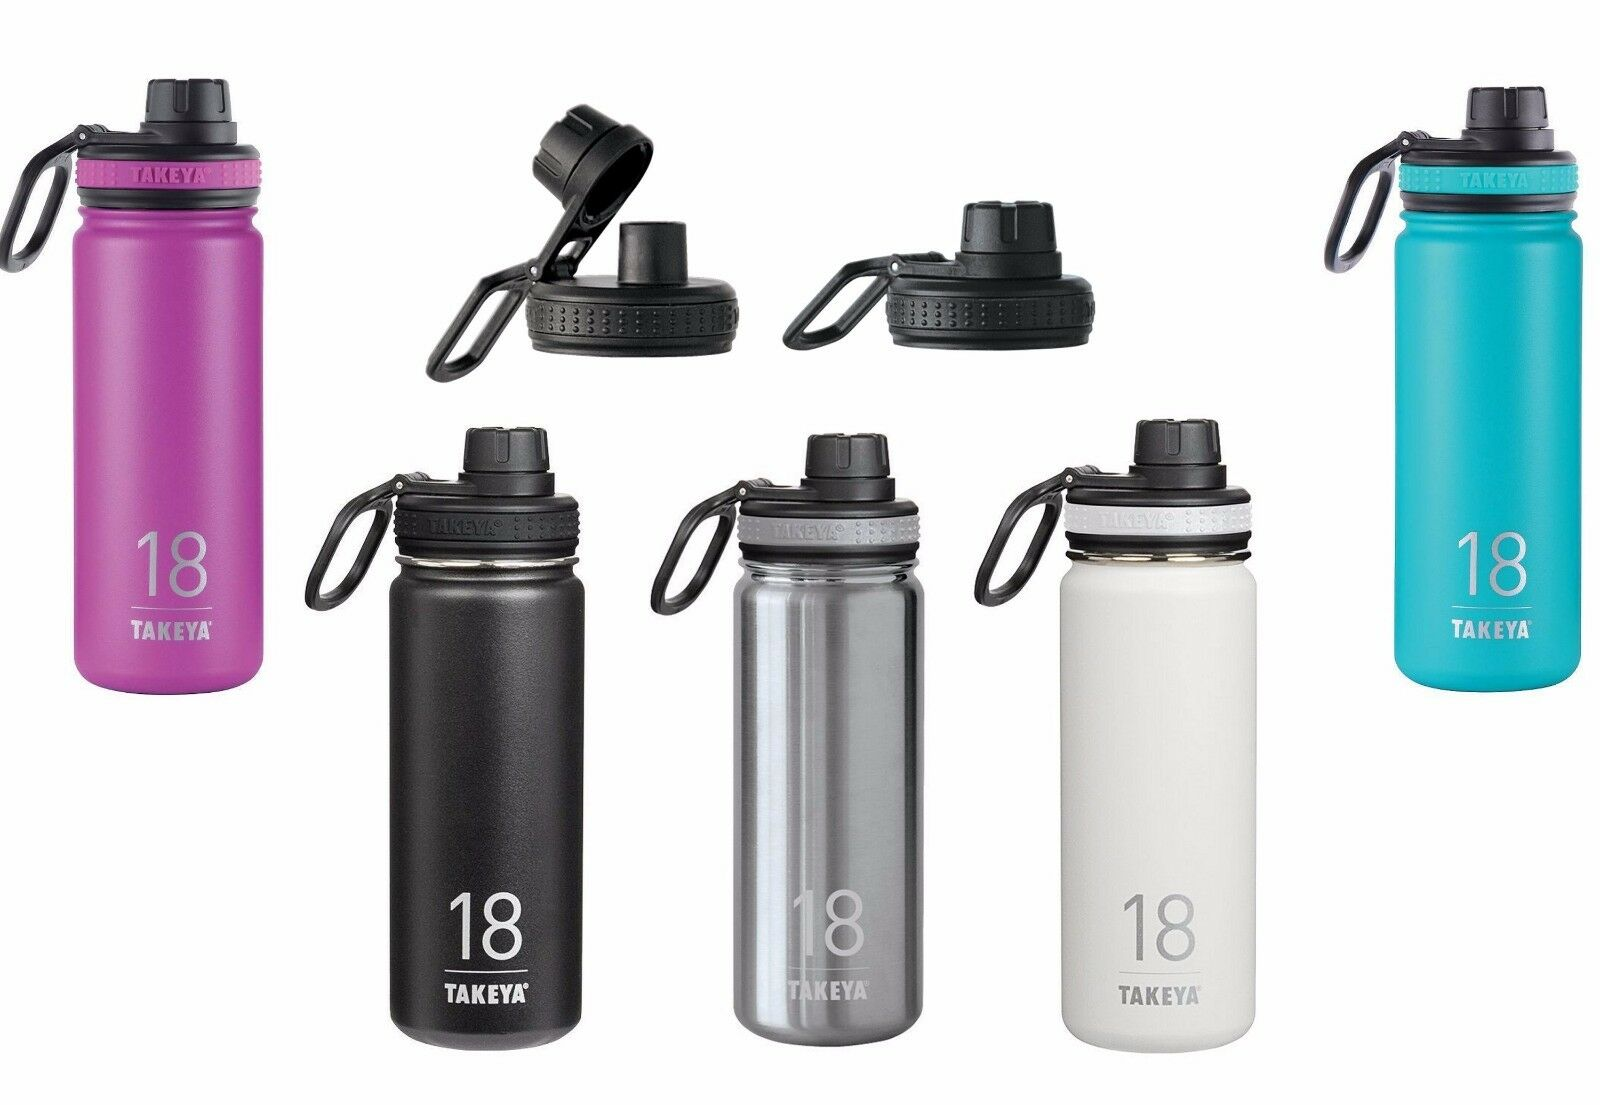 Takeya Thermoflask Double Wall Vacuum Insulated Stainless Bottle 18 oz